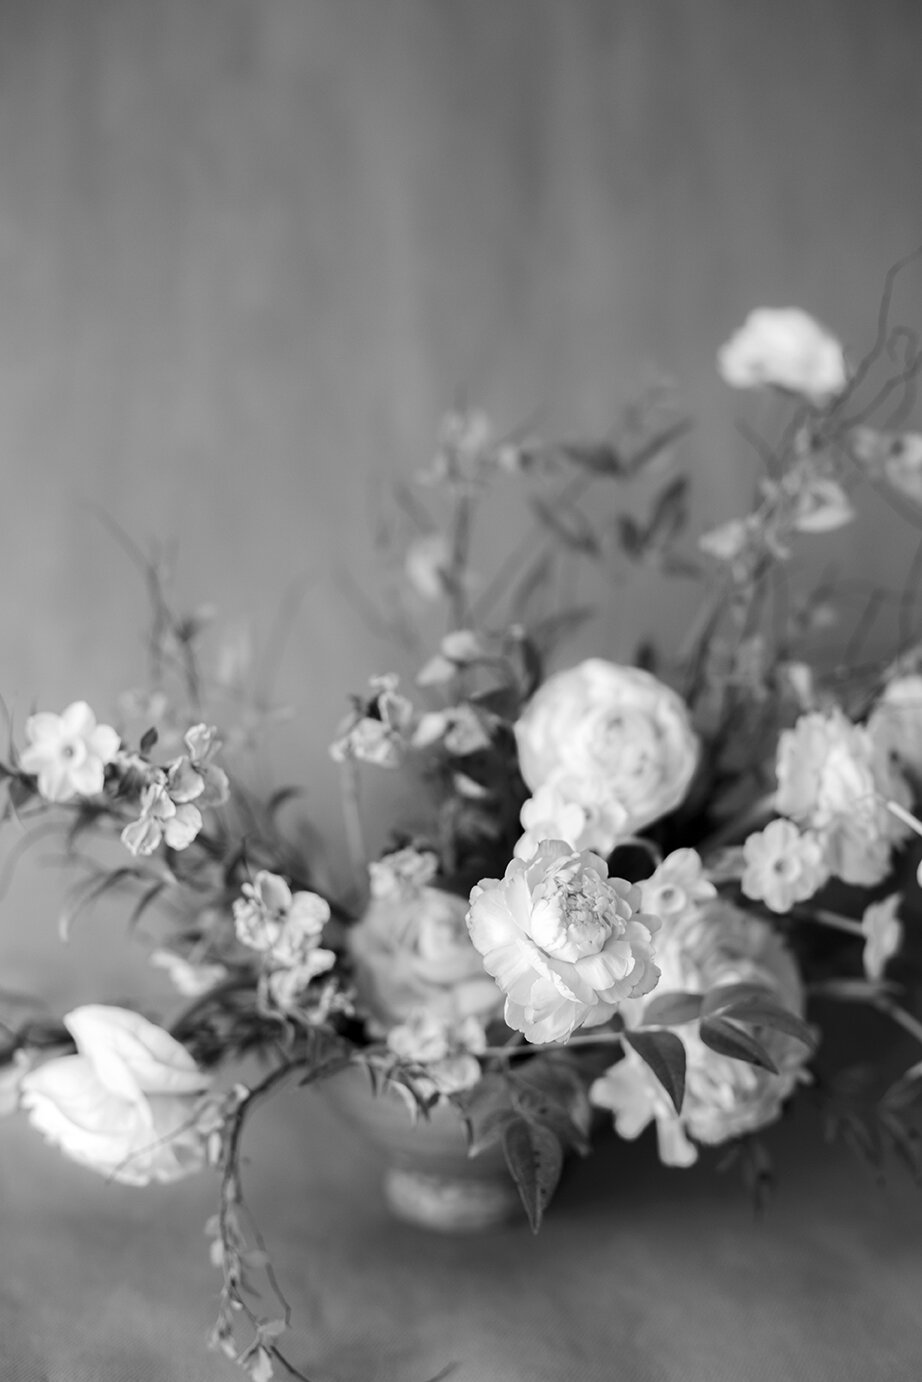 Fine Art Photography Nature Flower Photography Monochrome Ethereal Blossom Zen 31 Home Decor Dahlia Wall Art Black and White Photography The Dahlia Project Garden